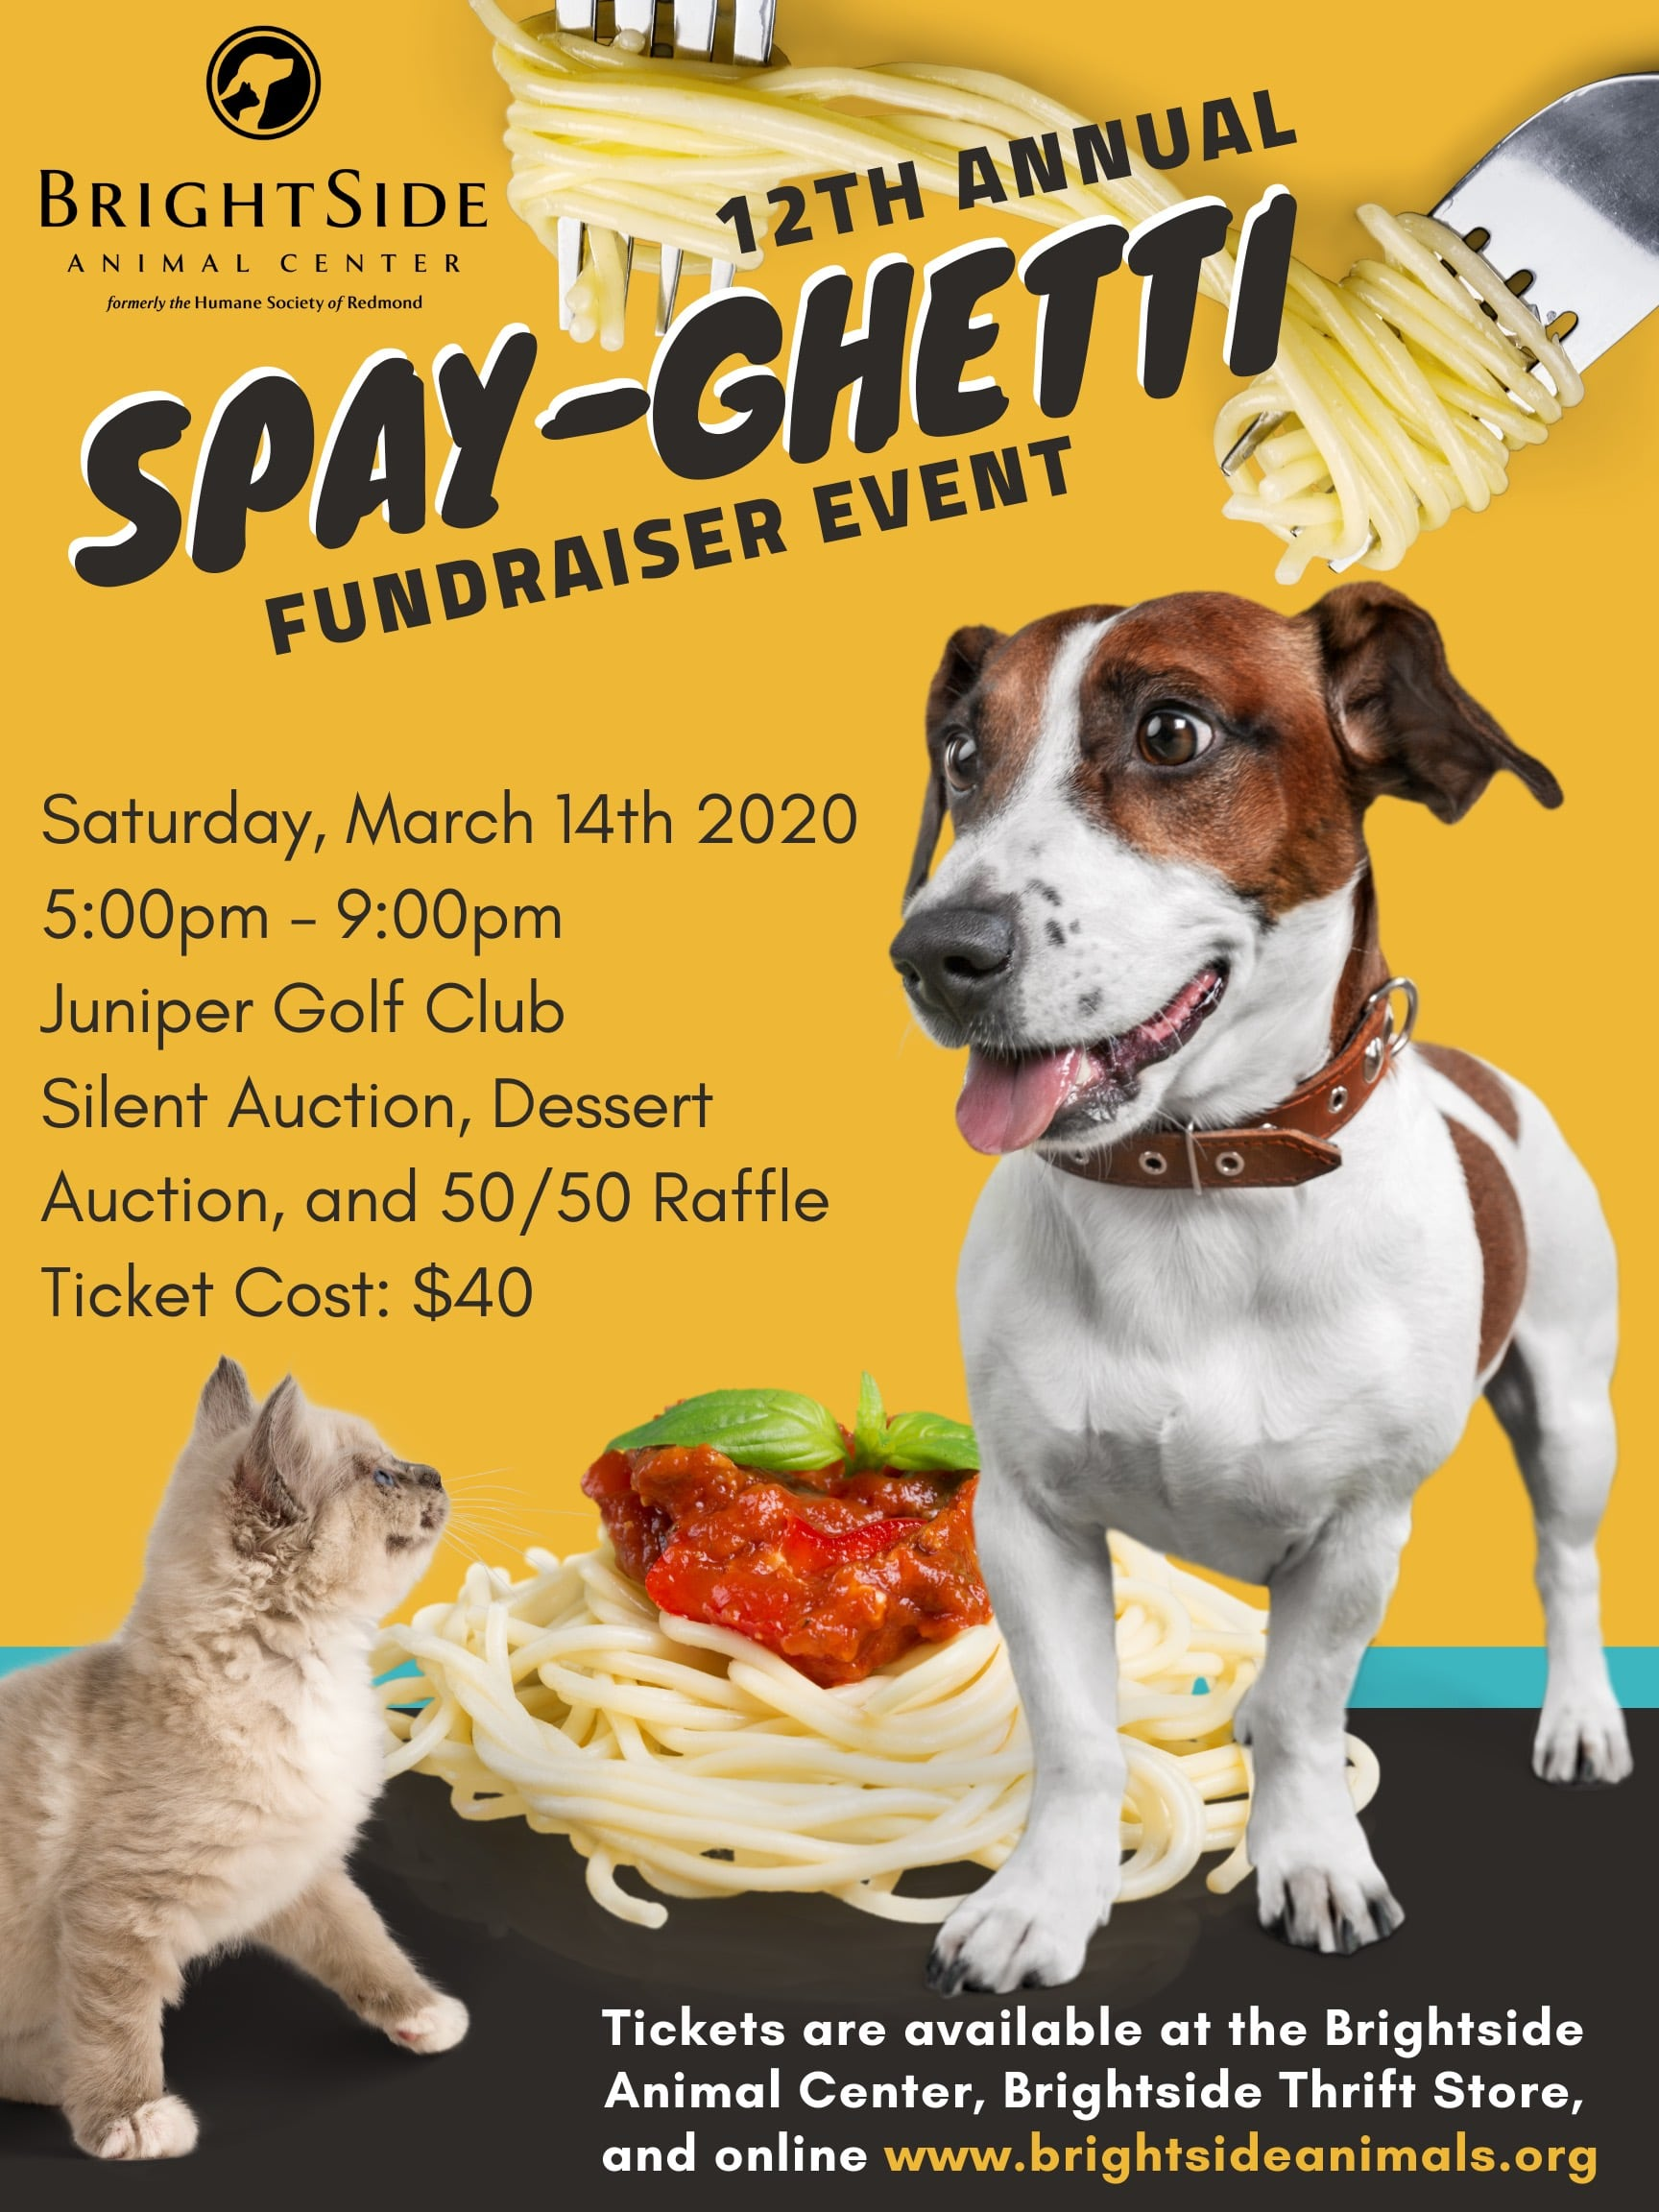 The Spay-ghetti fundraiser dinner to support BrightSide Animal Center in Redmond, OR will be held March 14, 2020.